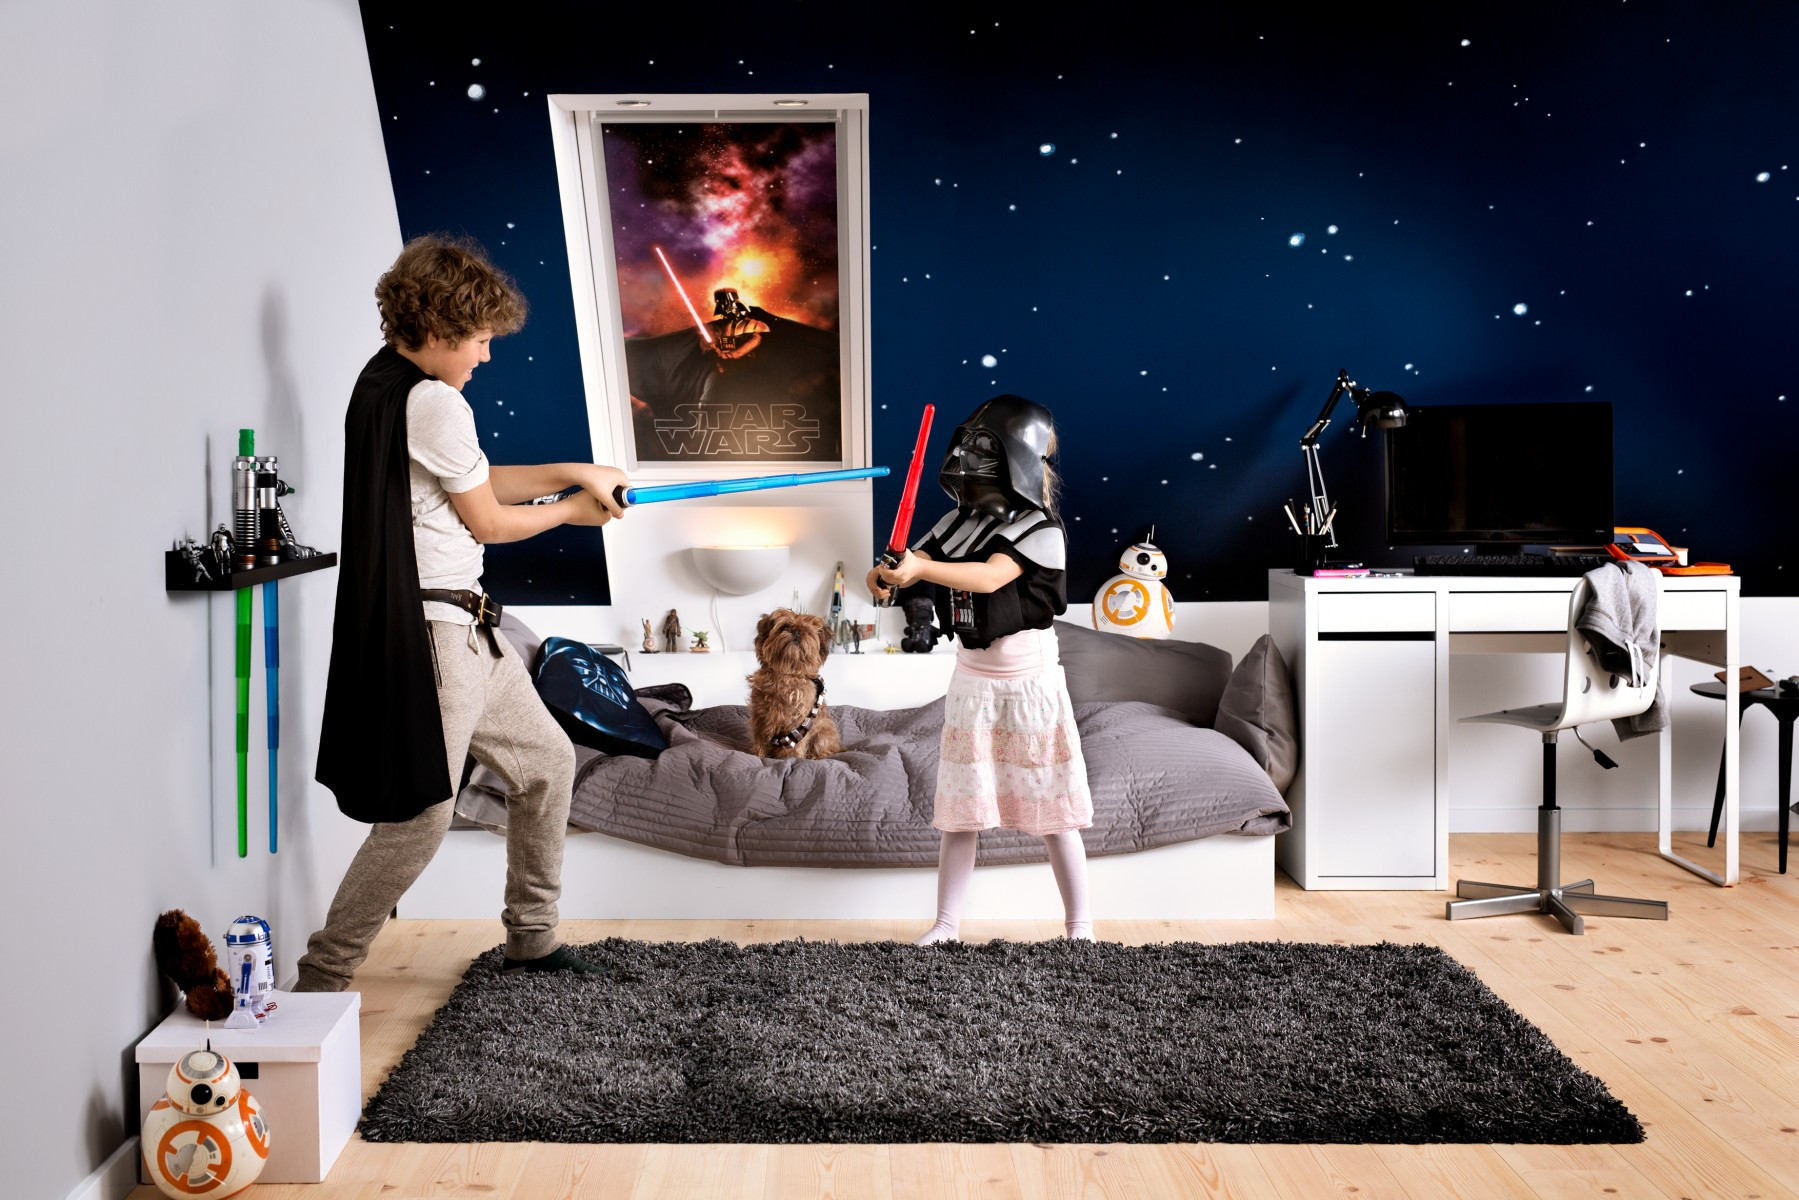 4 astuces pour cr er une chambre d 39 enfant inspir e de la saga star wars. Black Bedroom Furniture Sets. Home Design Ideas